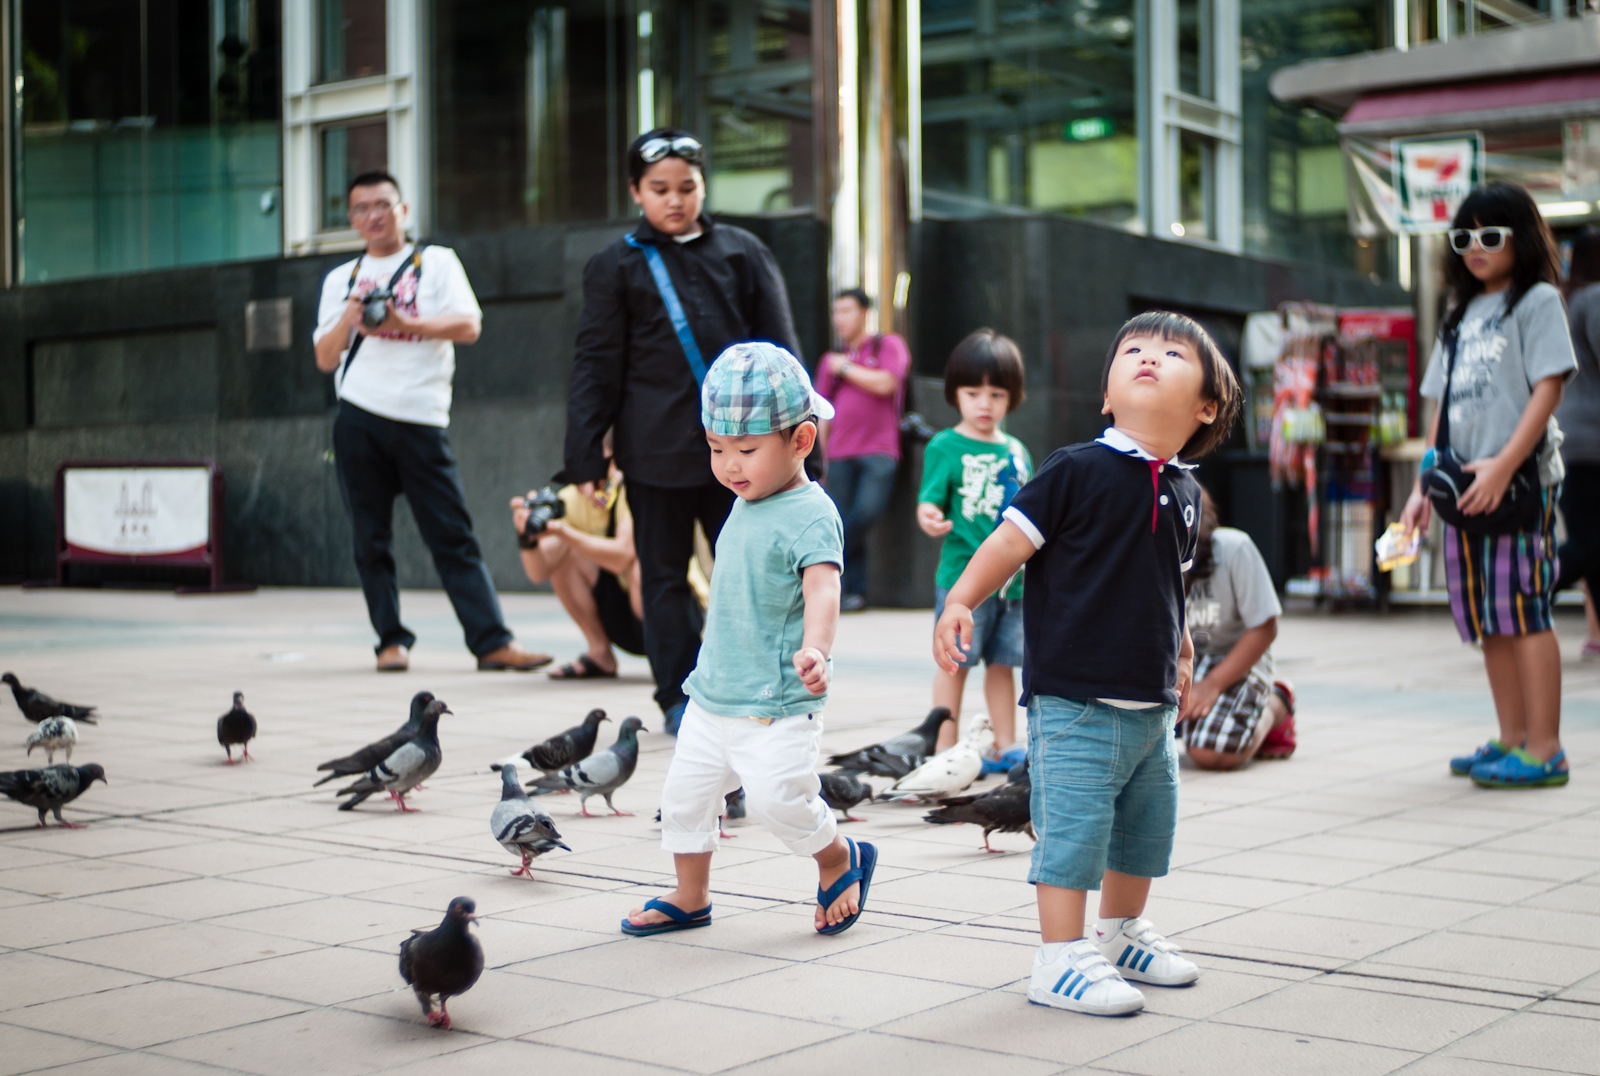 Children chasing pigeons in Orchard Road